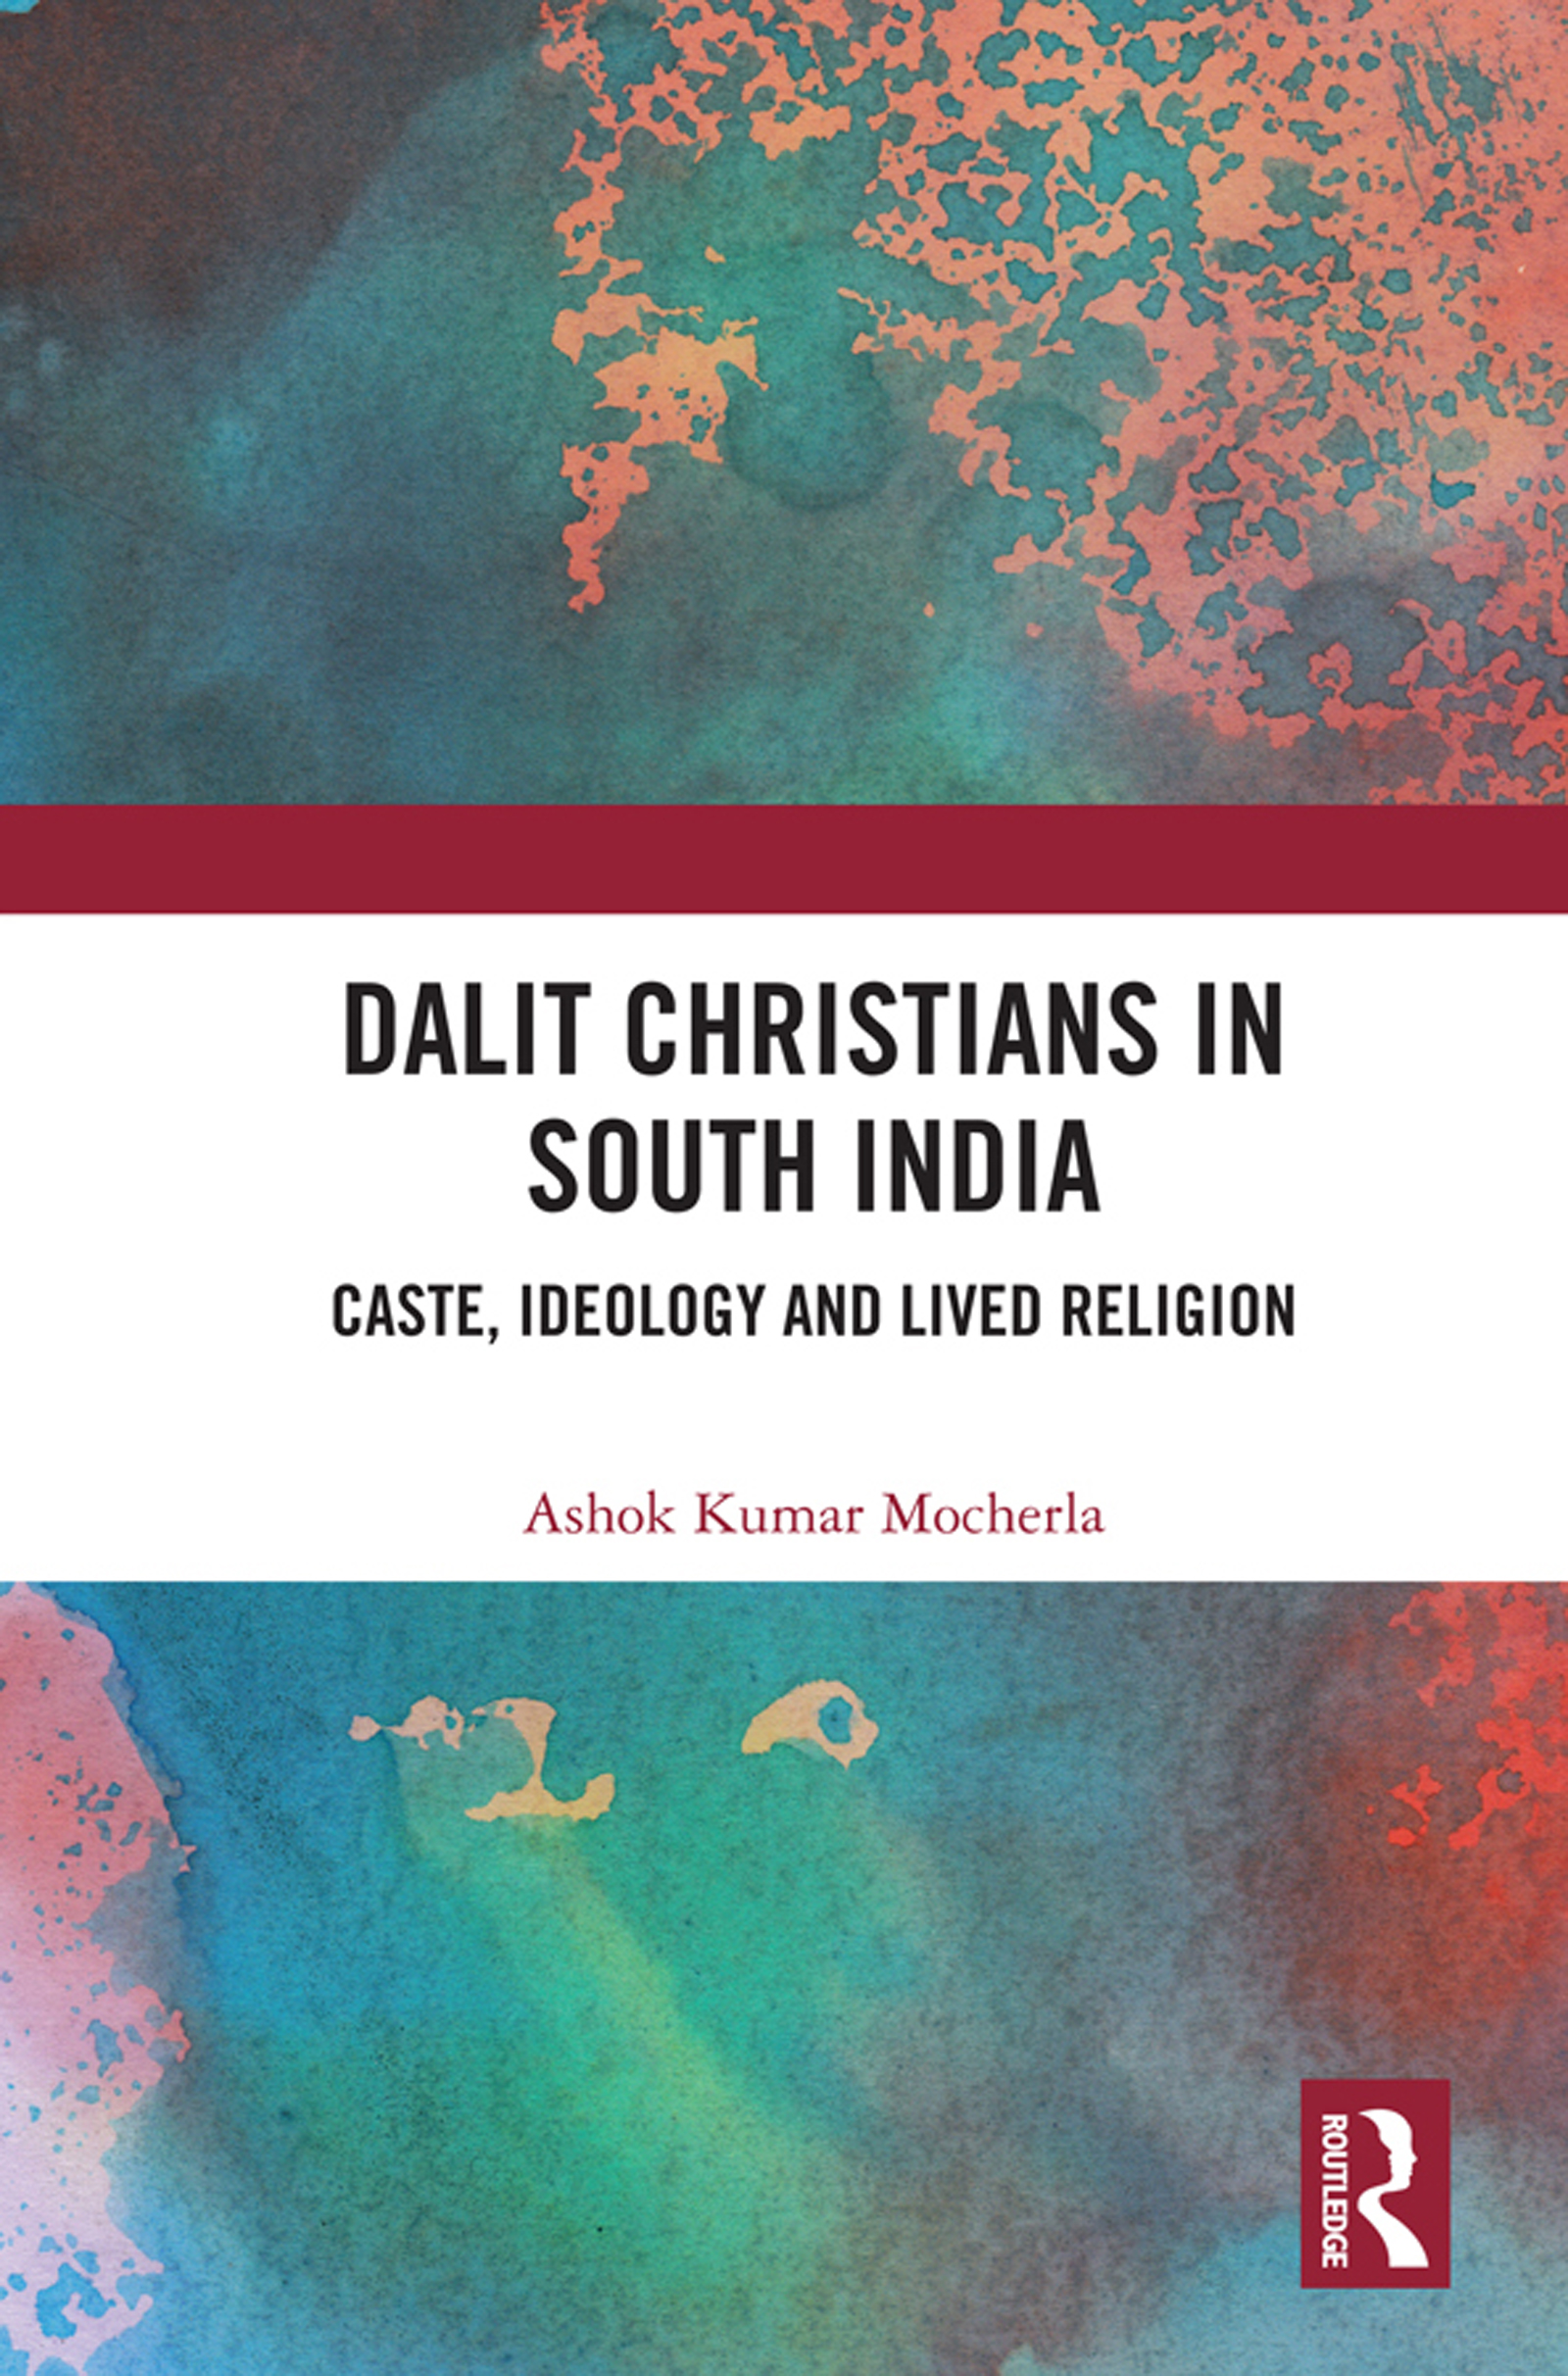 Dalit Christians in South India